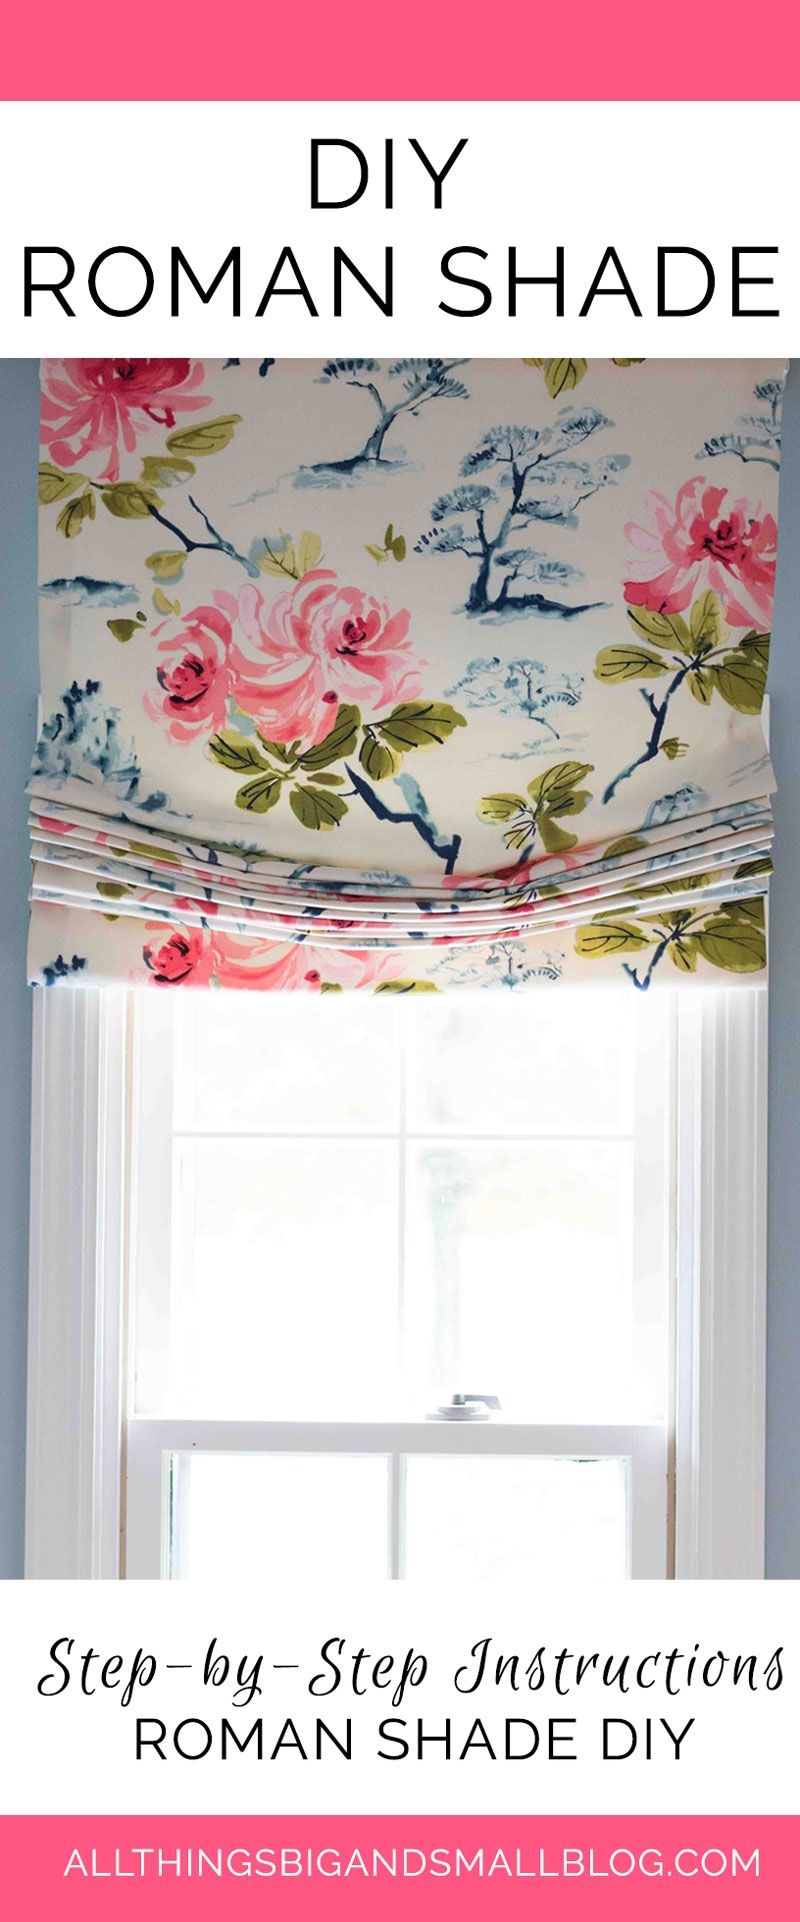 Snow white thermal fabric roman shades free shipping on orders over - Faux Fake Flat Roman Shade Valance Your Choice Of Fabric Up To 10 Dollars Yard Included Custom Sizing Premier Prints Monroe Snowy Fields